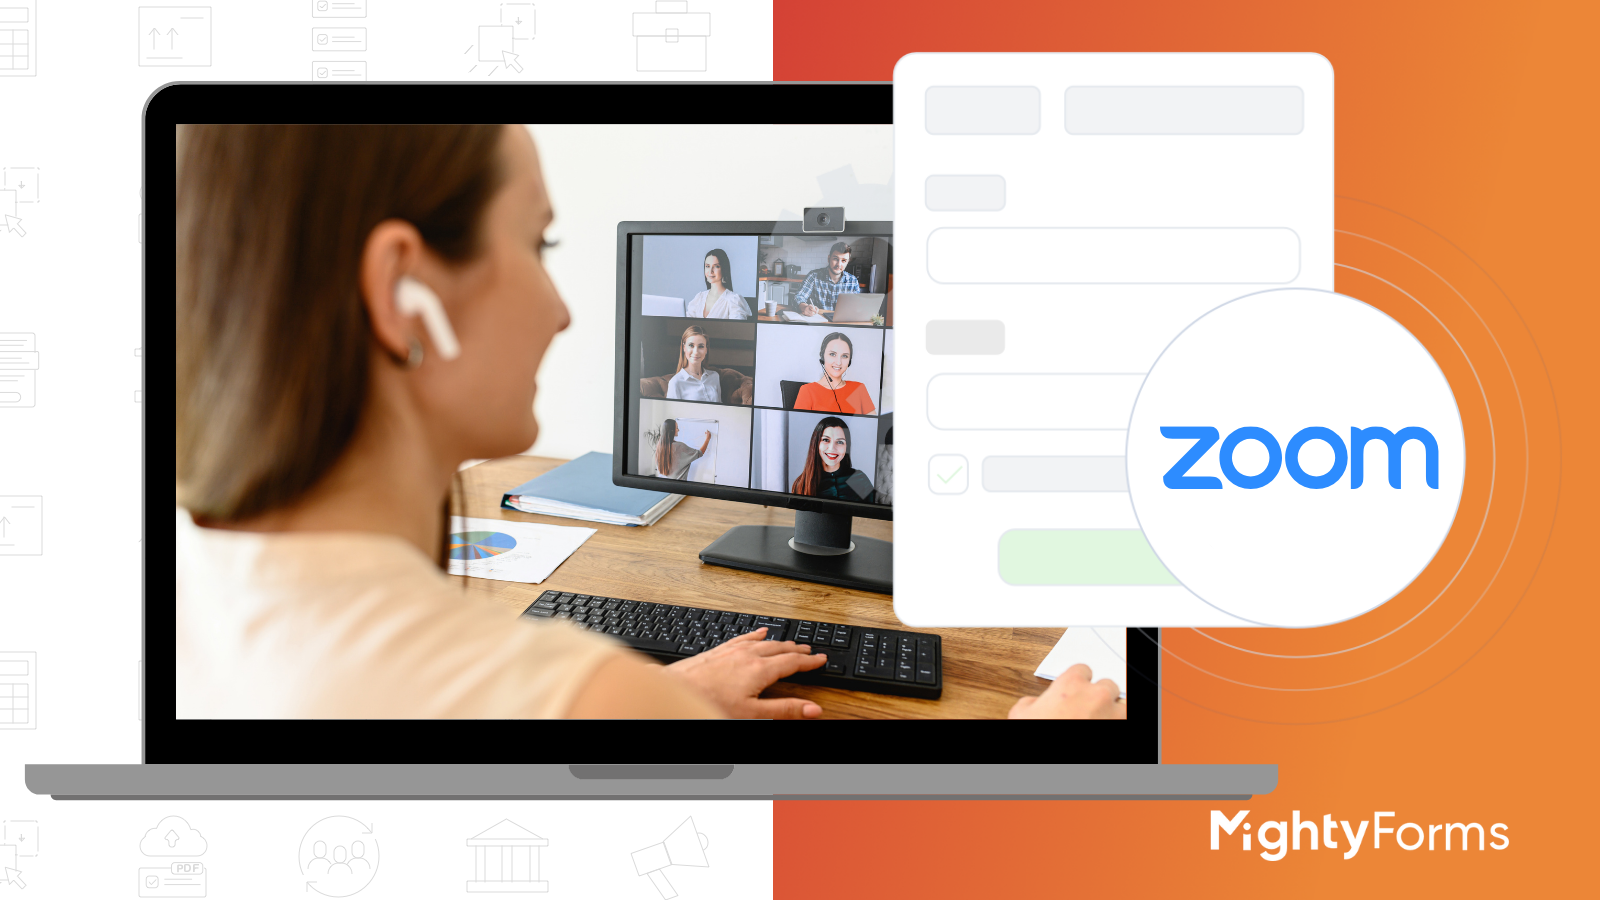 Zoom meeting scheduling with MightyForms Form creator